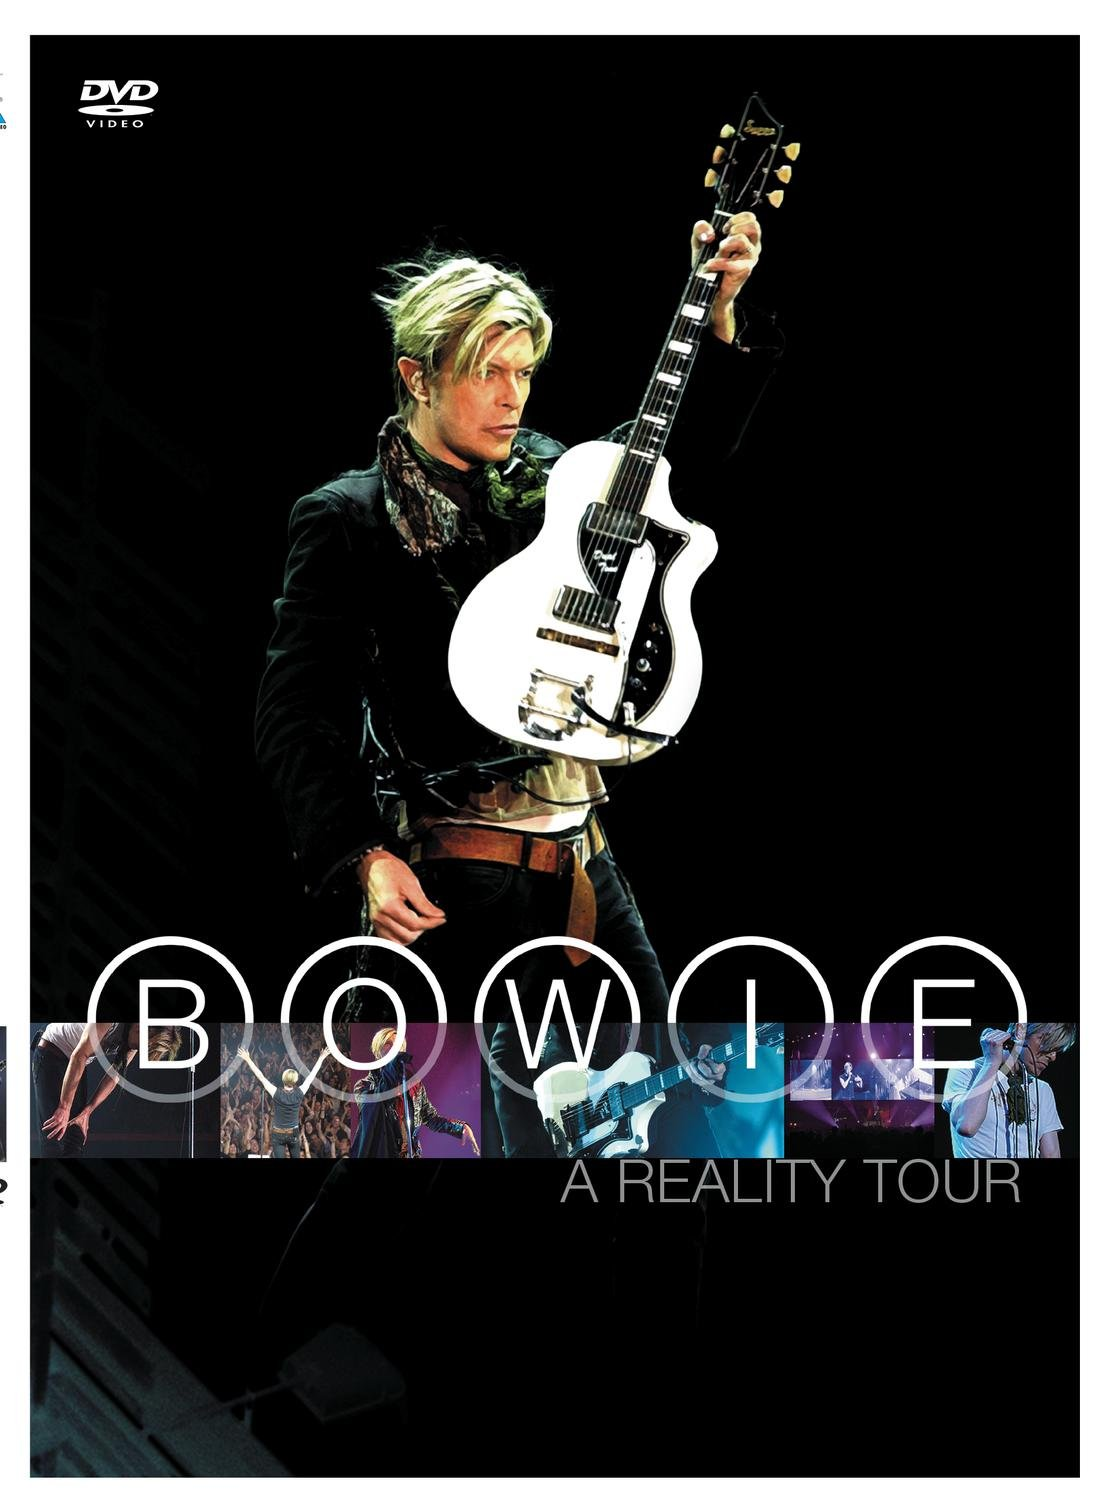 DVD : David Bowie - David Bowie: A Reality Tour (Digipack Packaging)